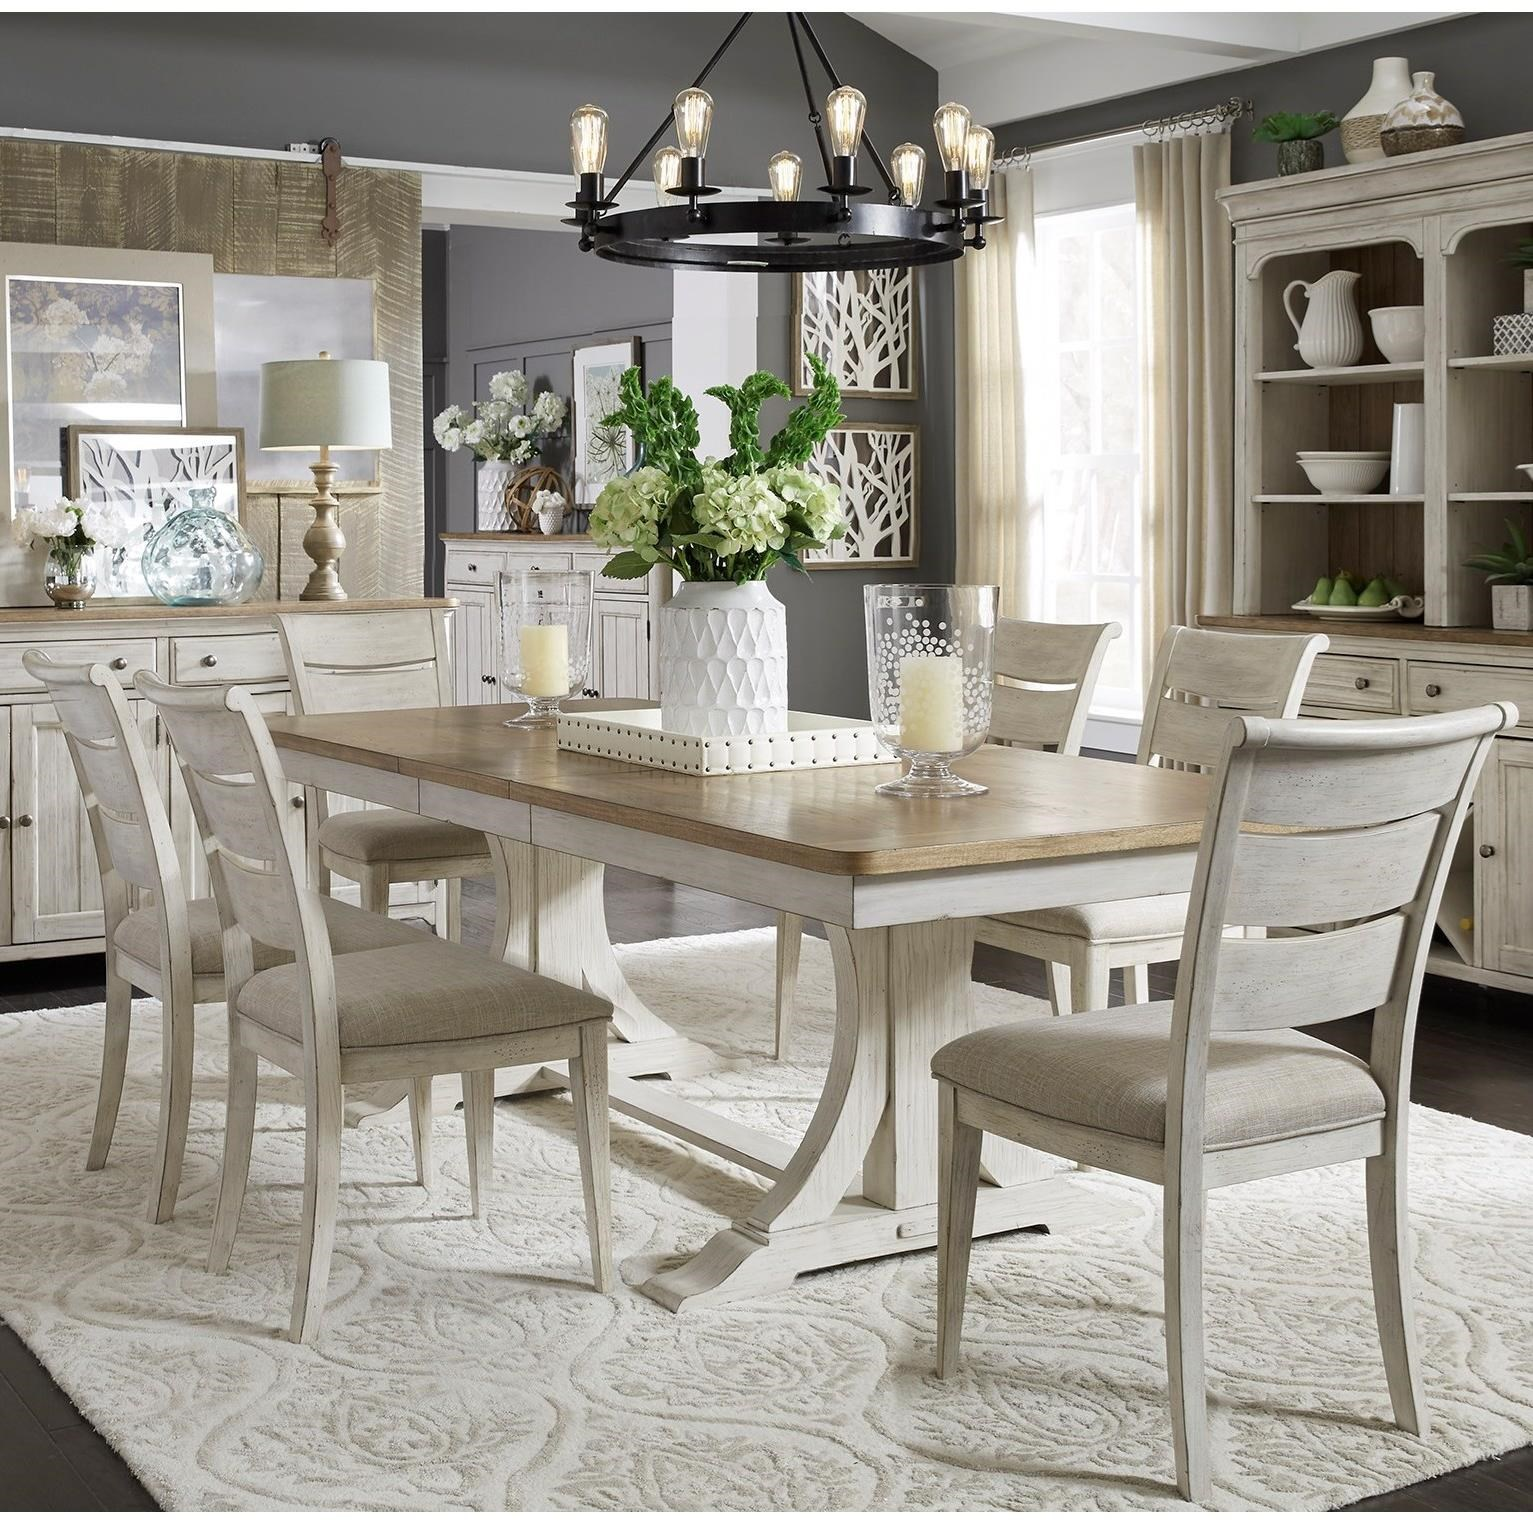 Farmhouse Reimagined 7-Piece Table and Chair Set by Freedom Furniture at Ruby Gordon Home